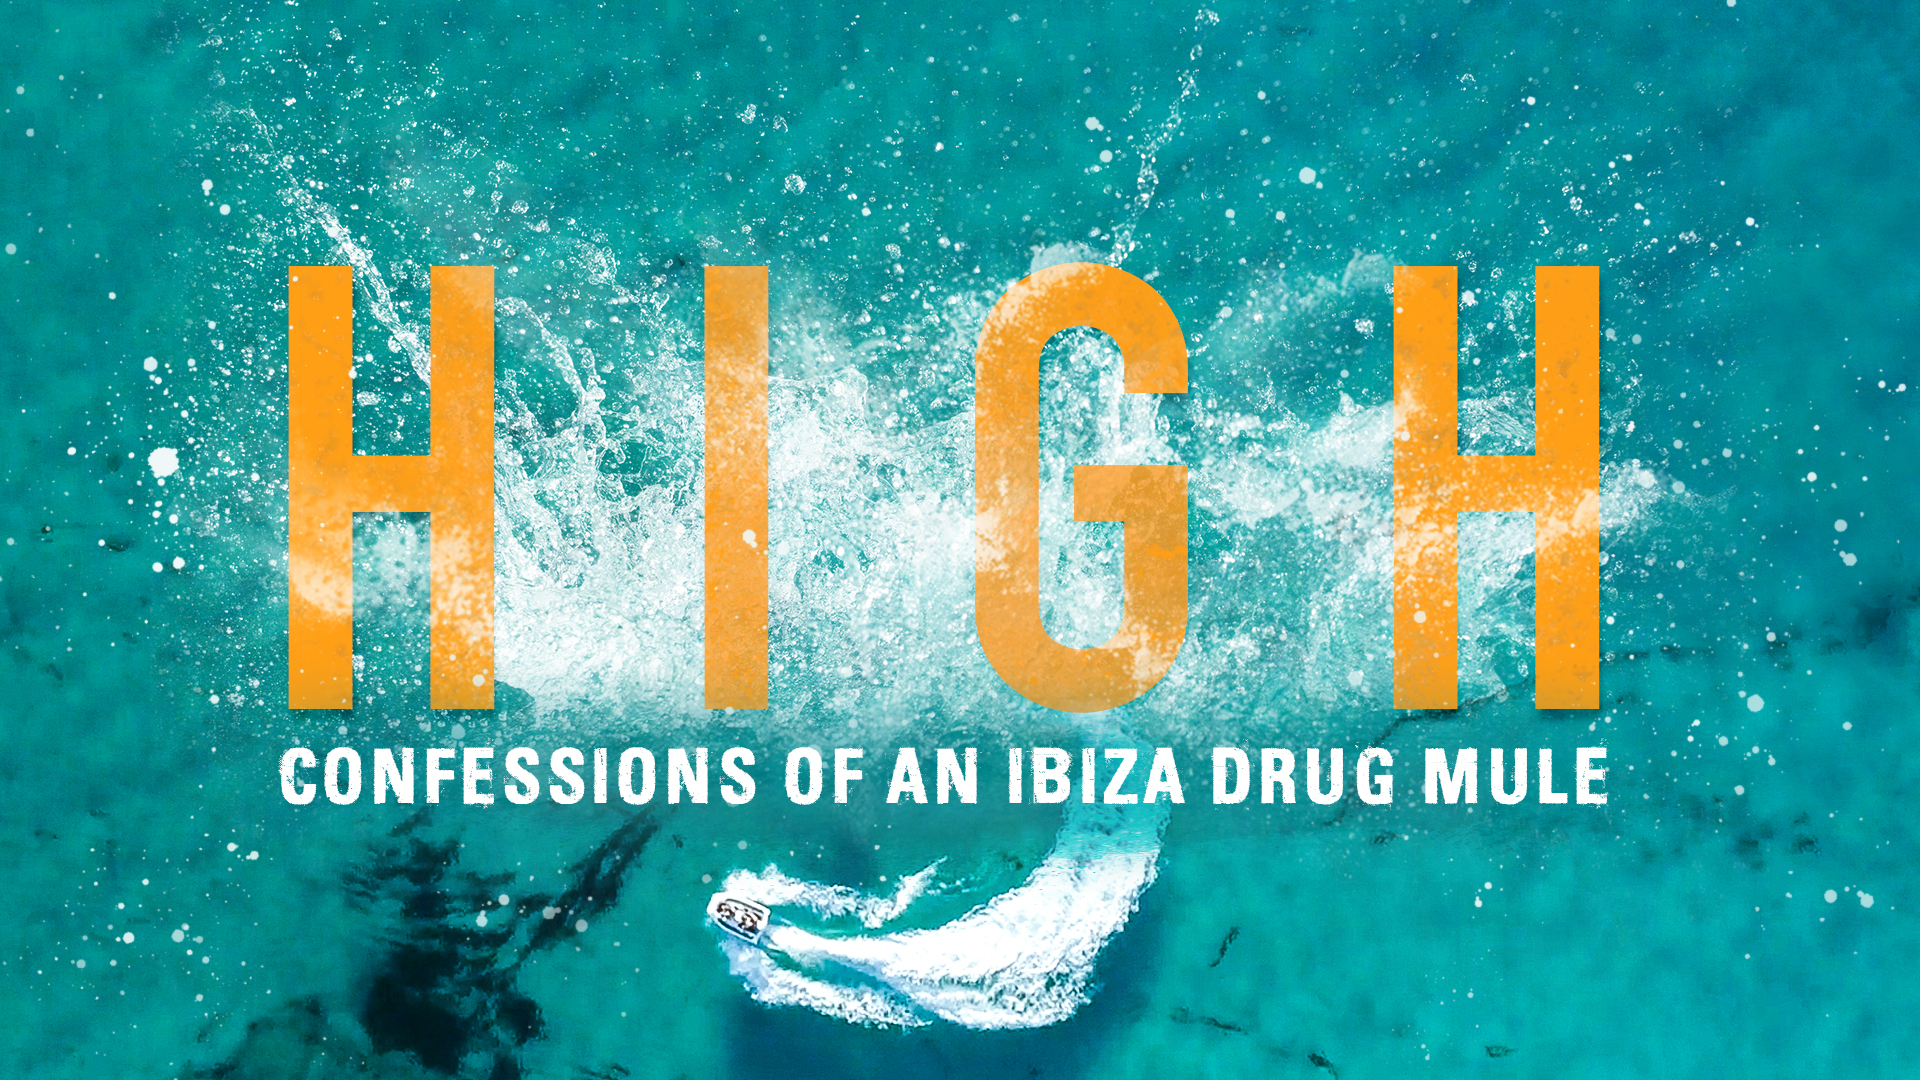 High: Confessions of an Ibiza Drug Mule